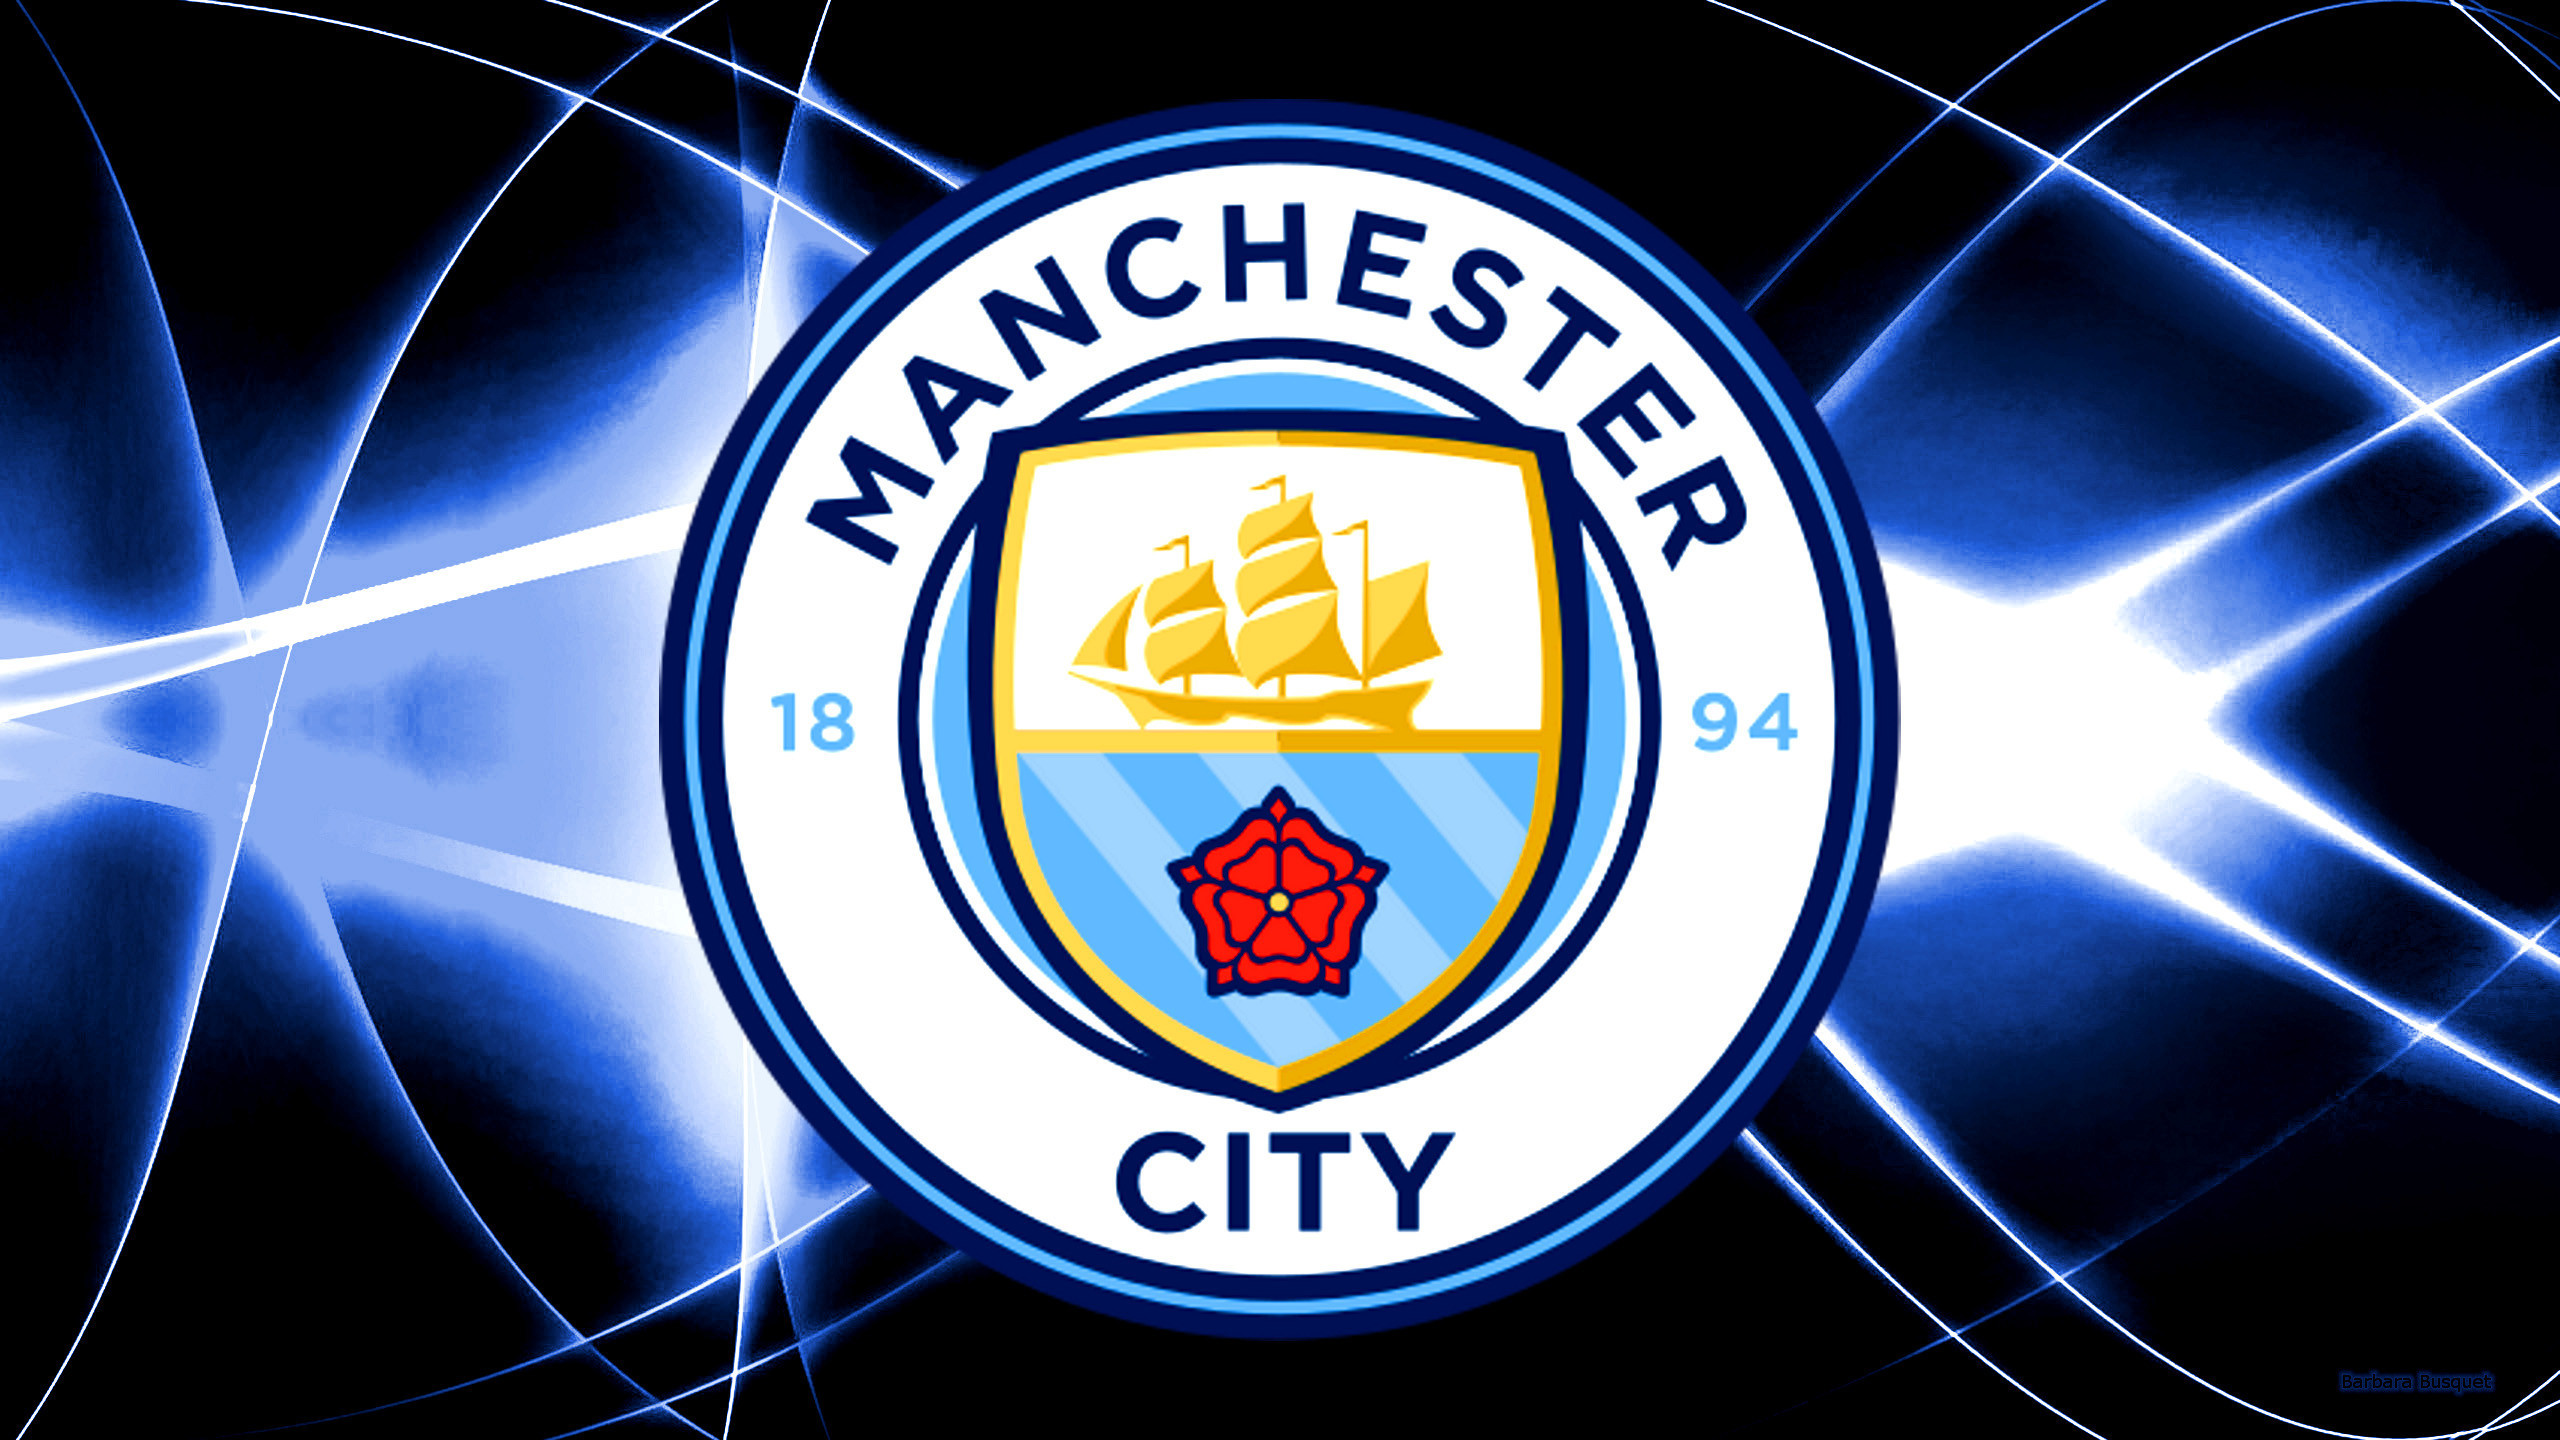 Manchester City Logo Wallpaper ·① WallpaperTag